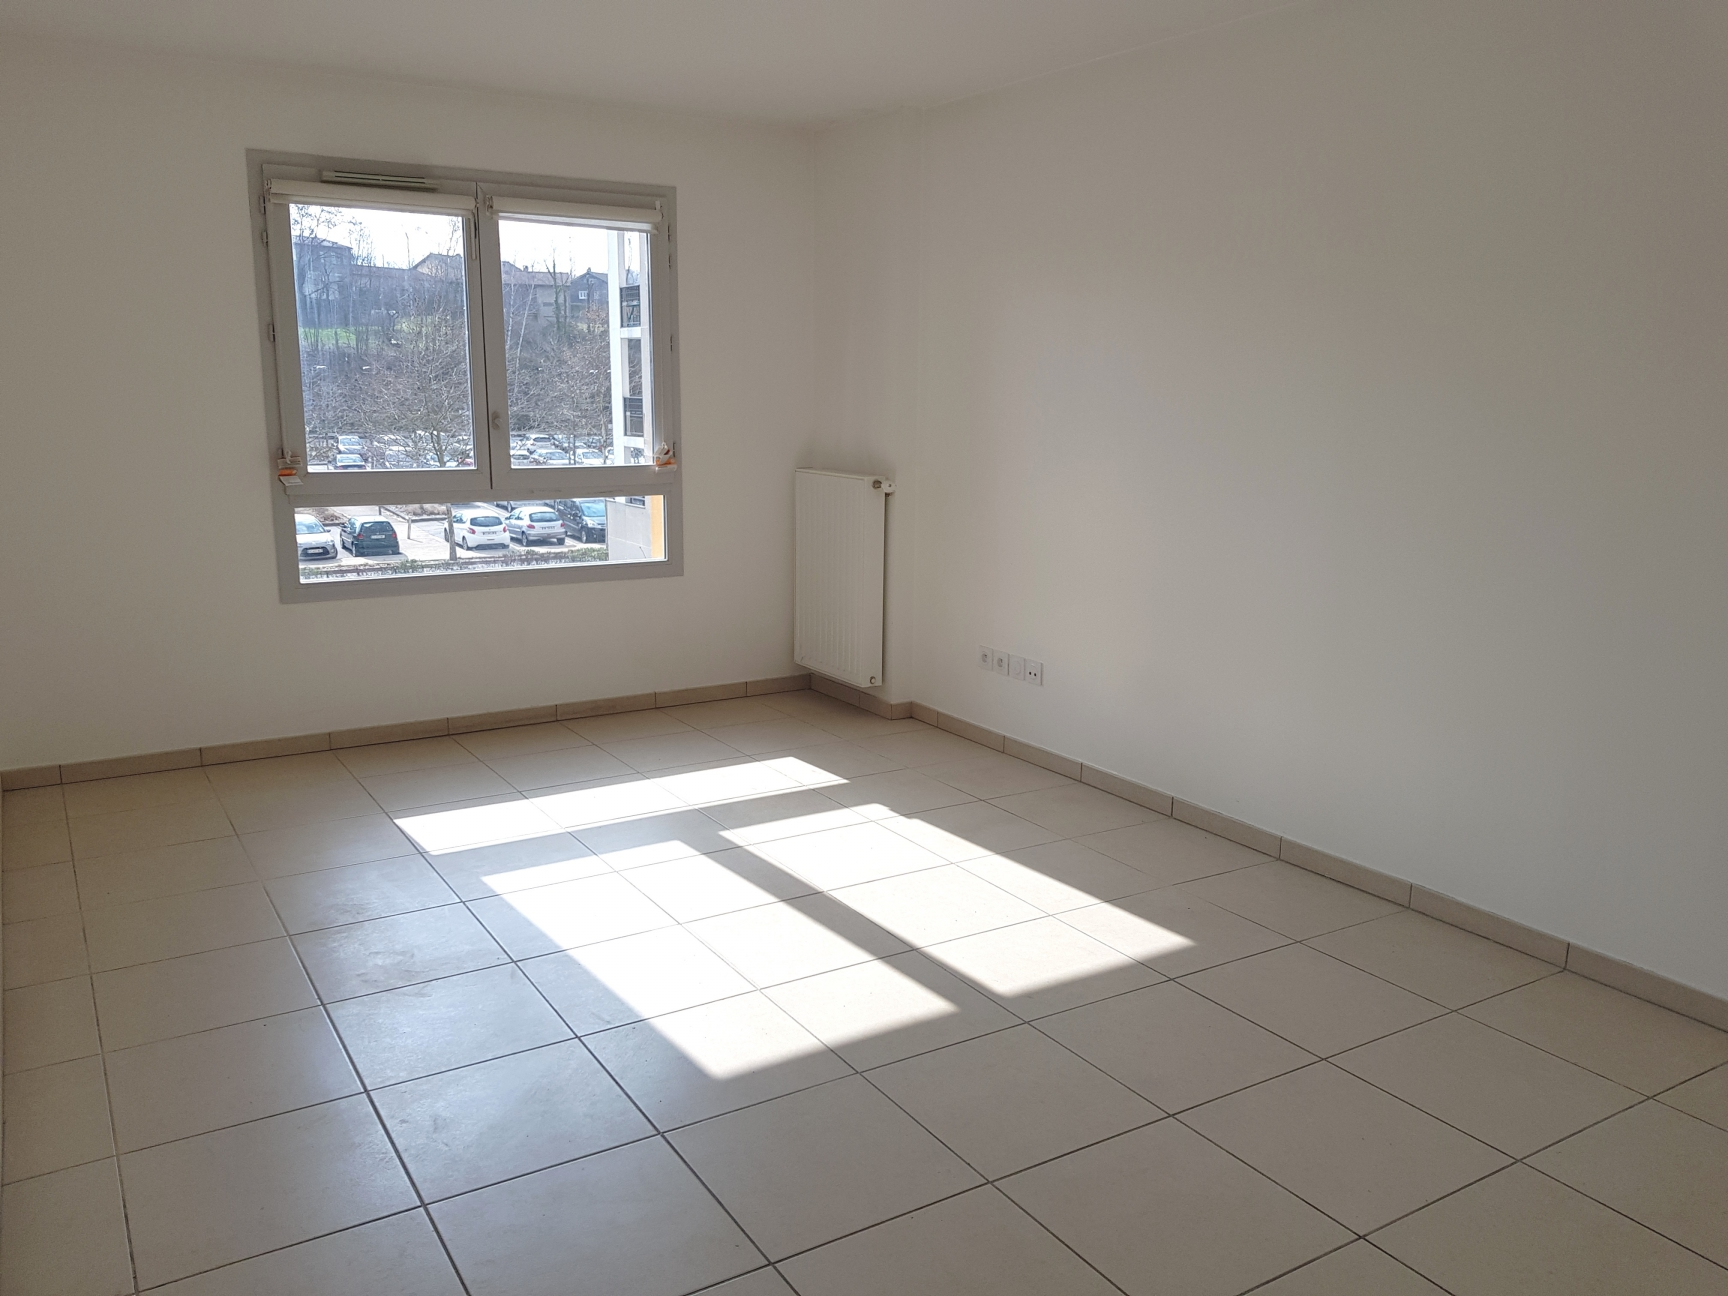 Photos de Appartement à Lozanne (69380)